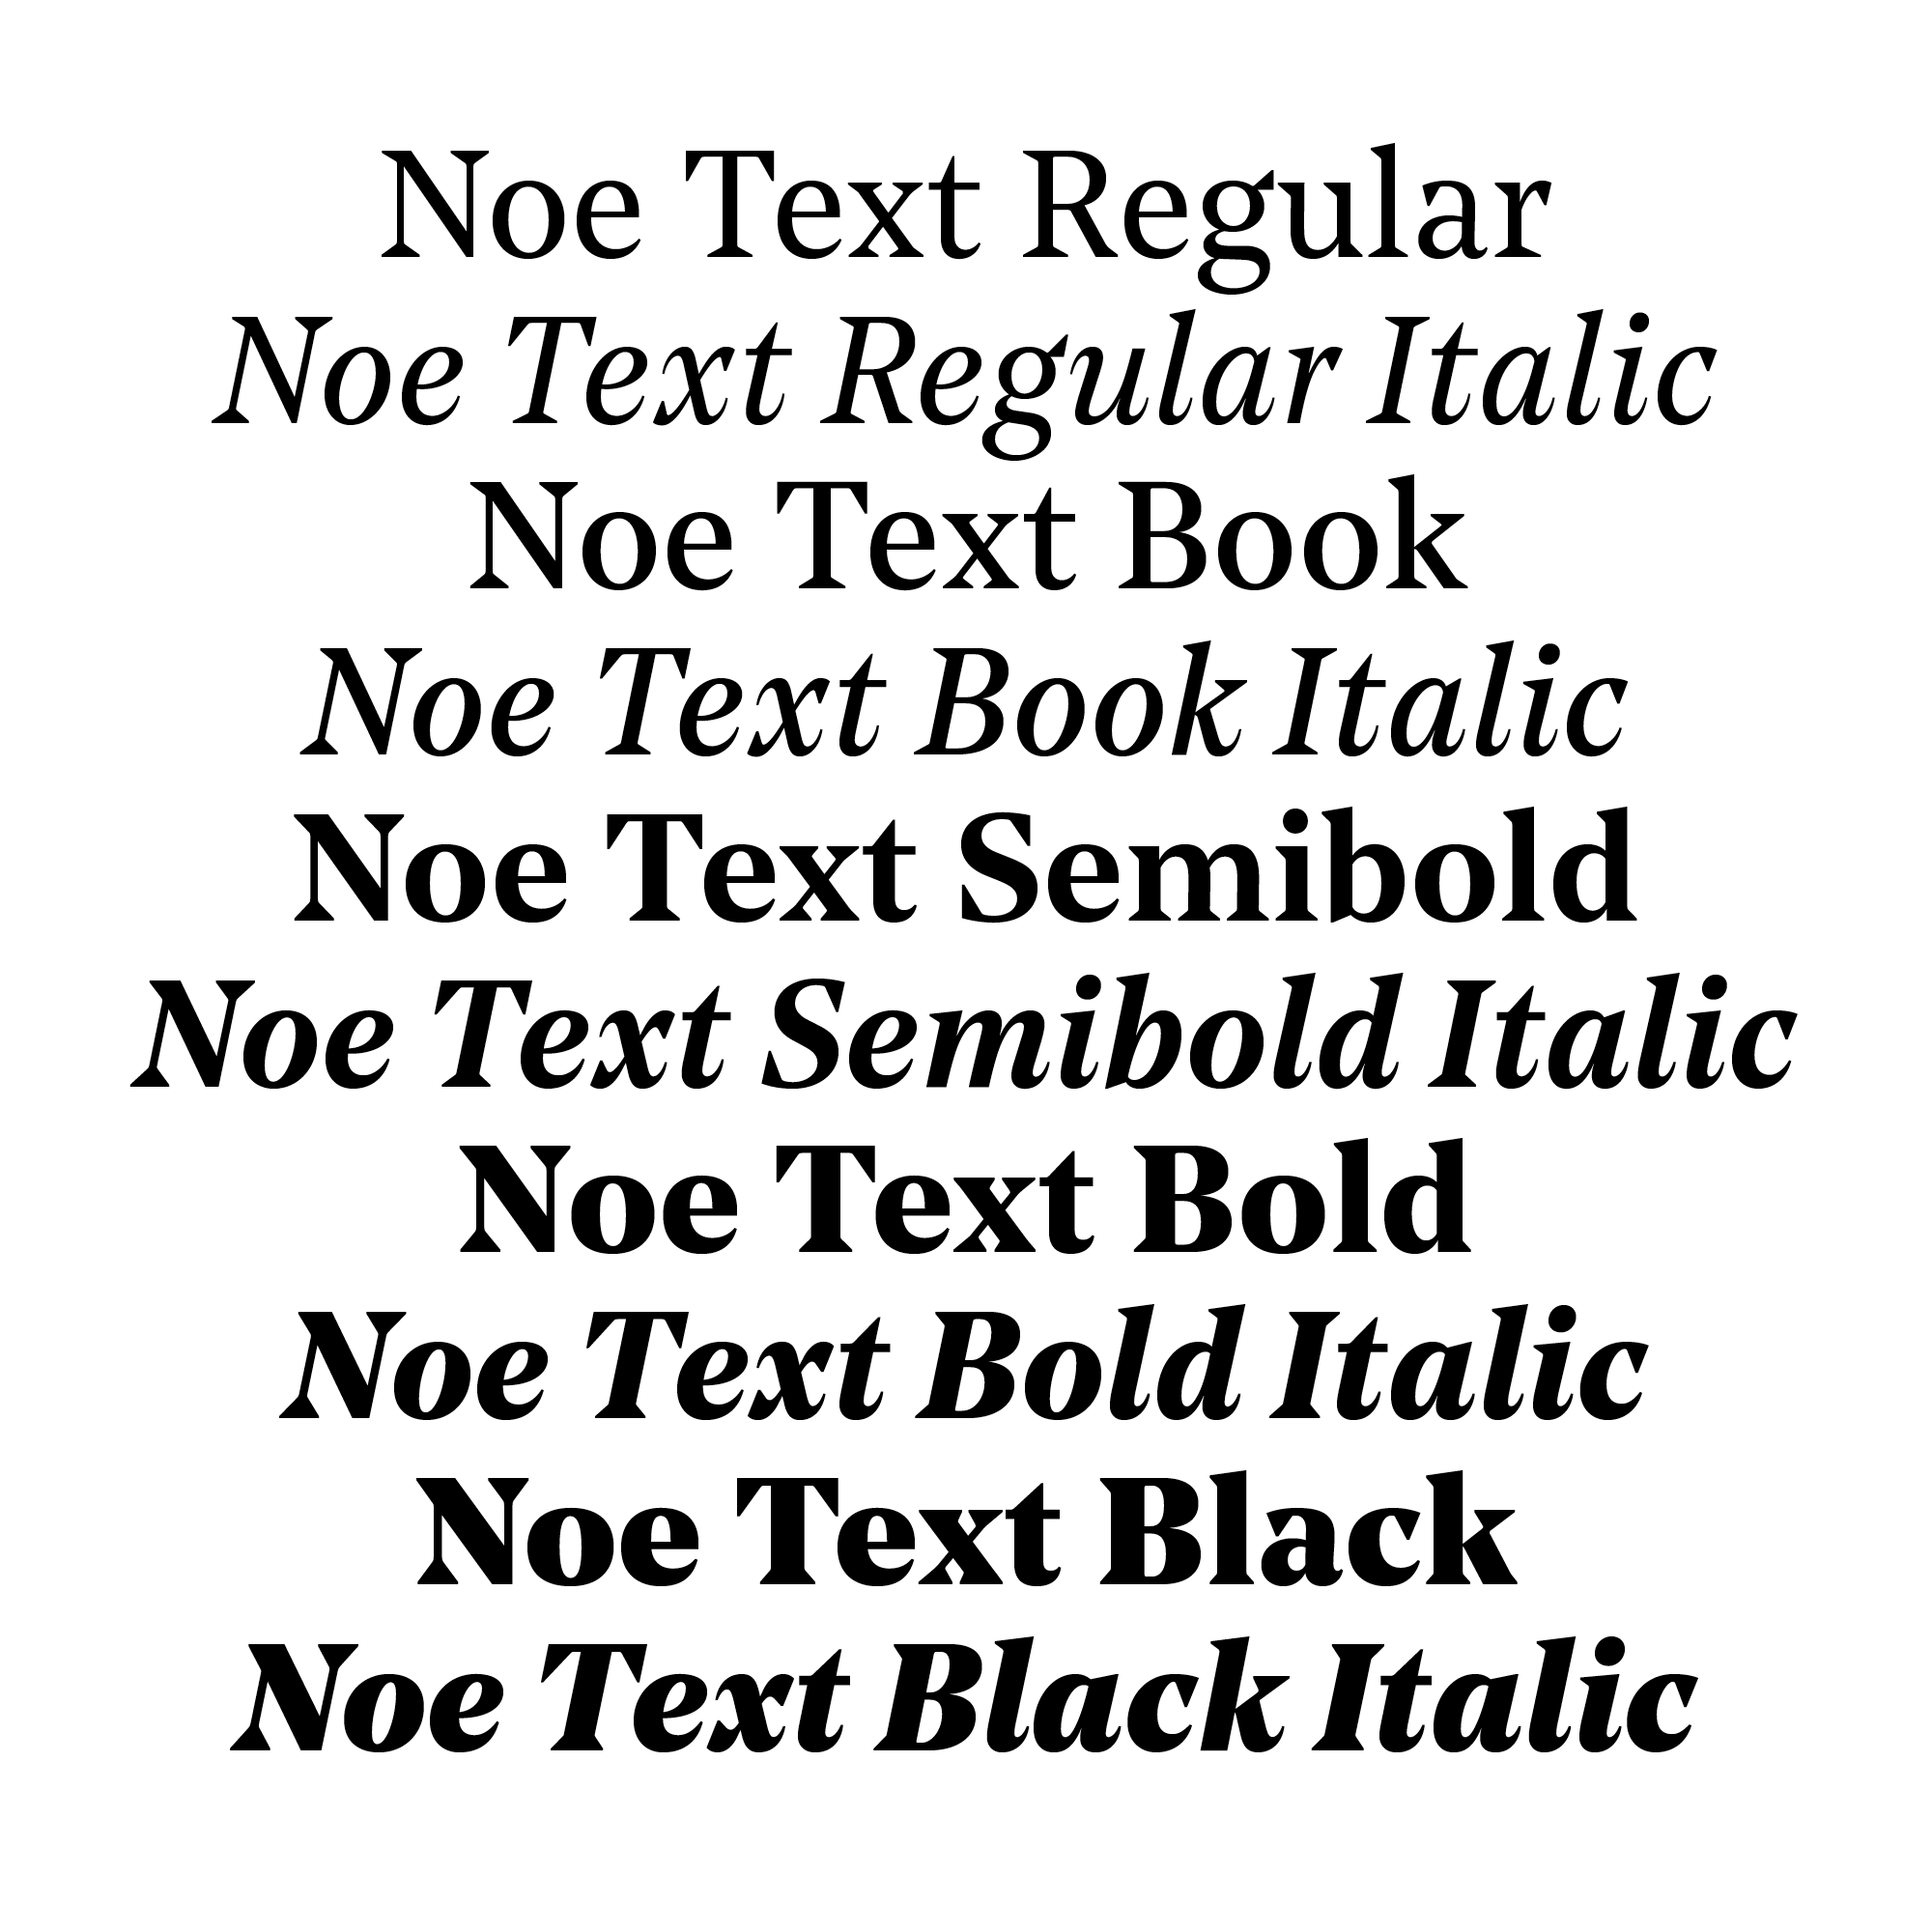 Noe Text styles & weights